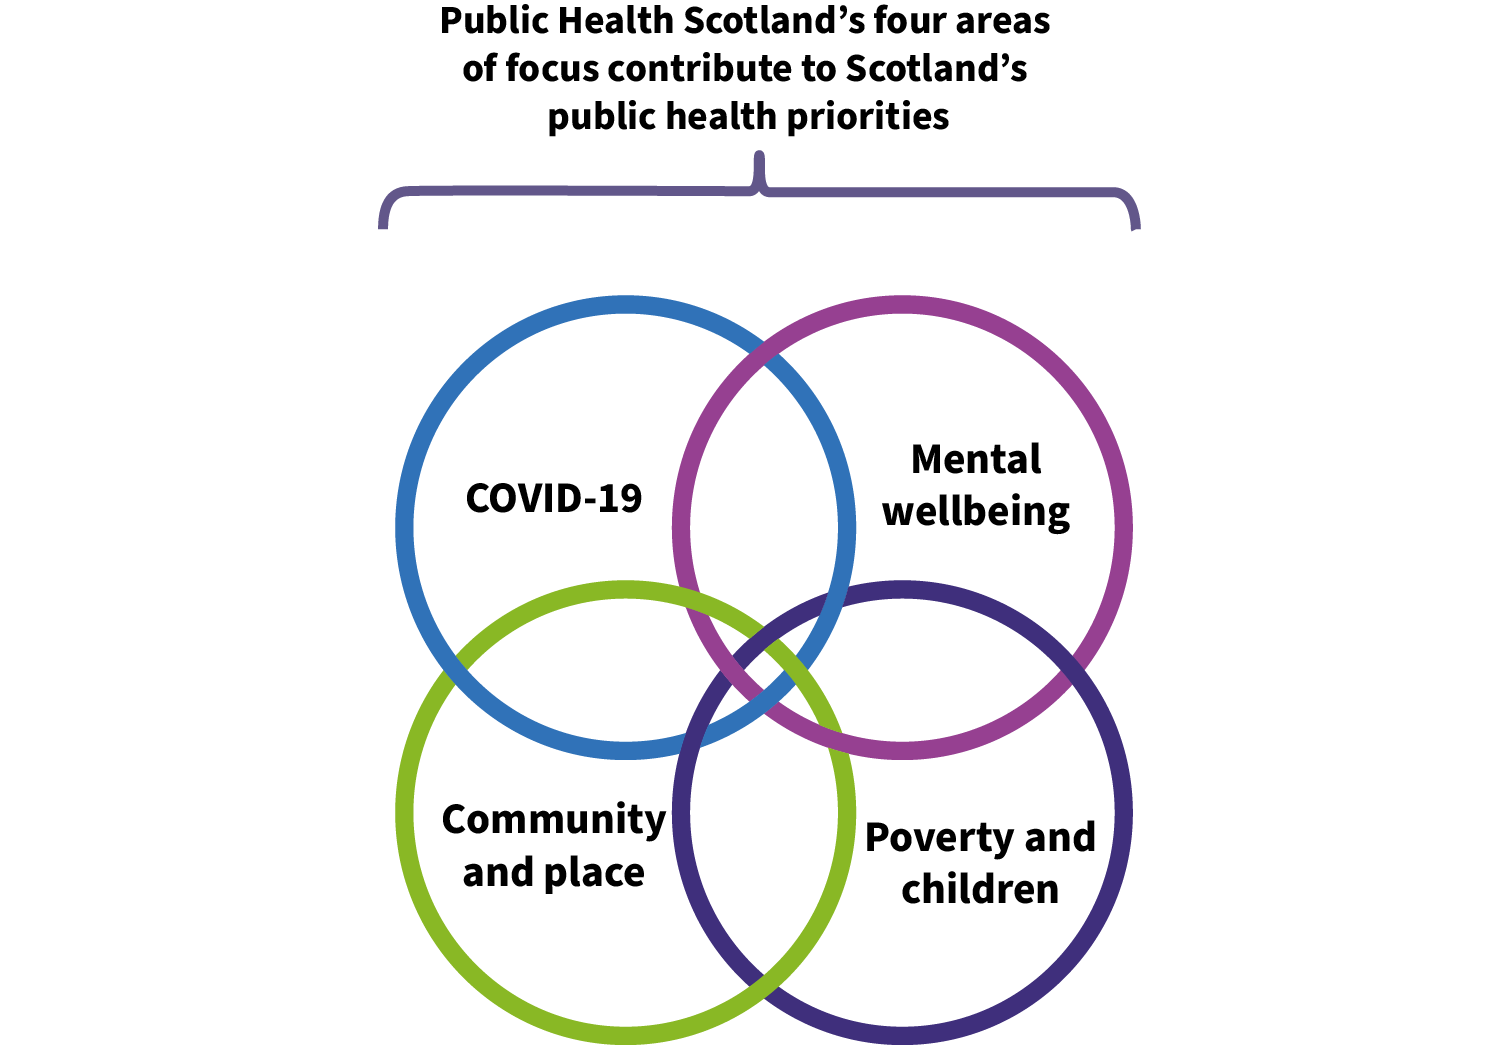 Interlinking circles highlighting the four areas we will focus on - COVID-19, mental wellbeing, community and place and poverty and health